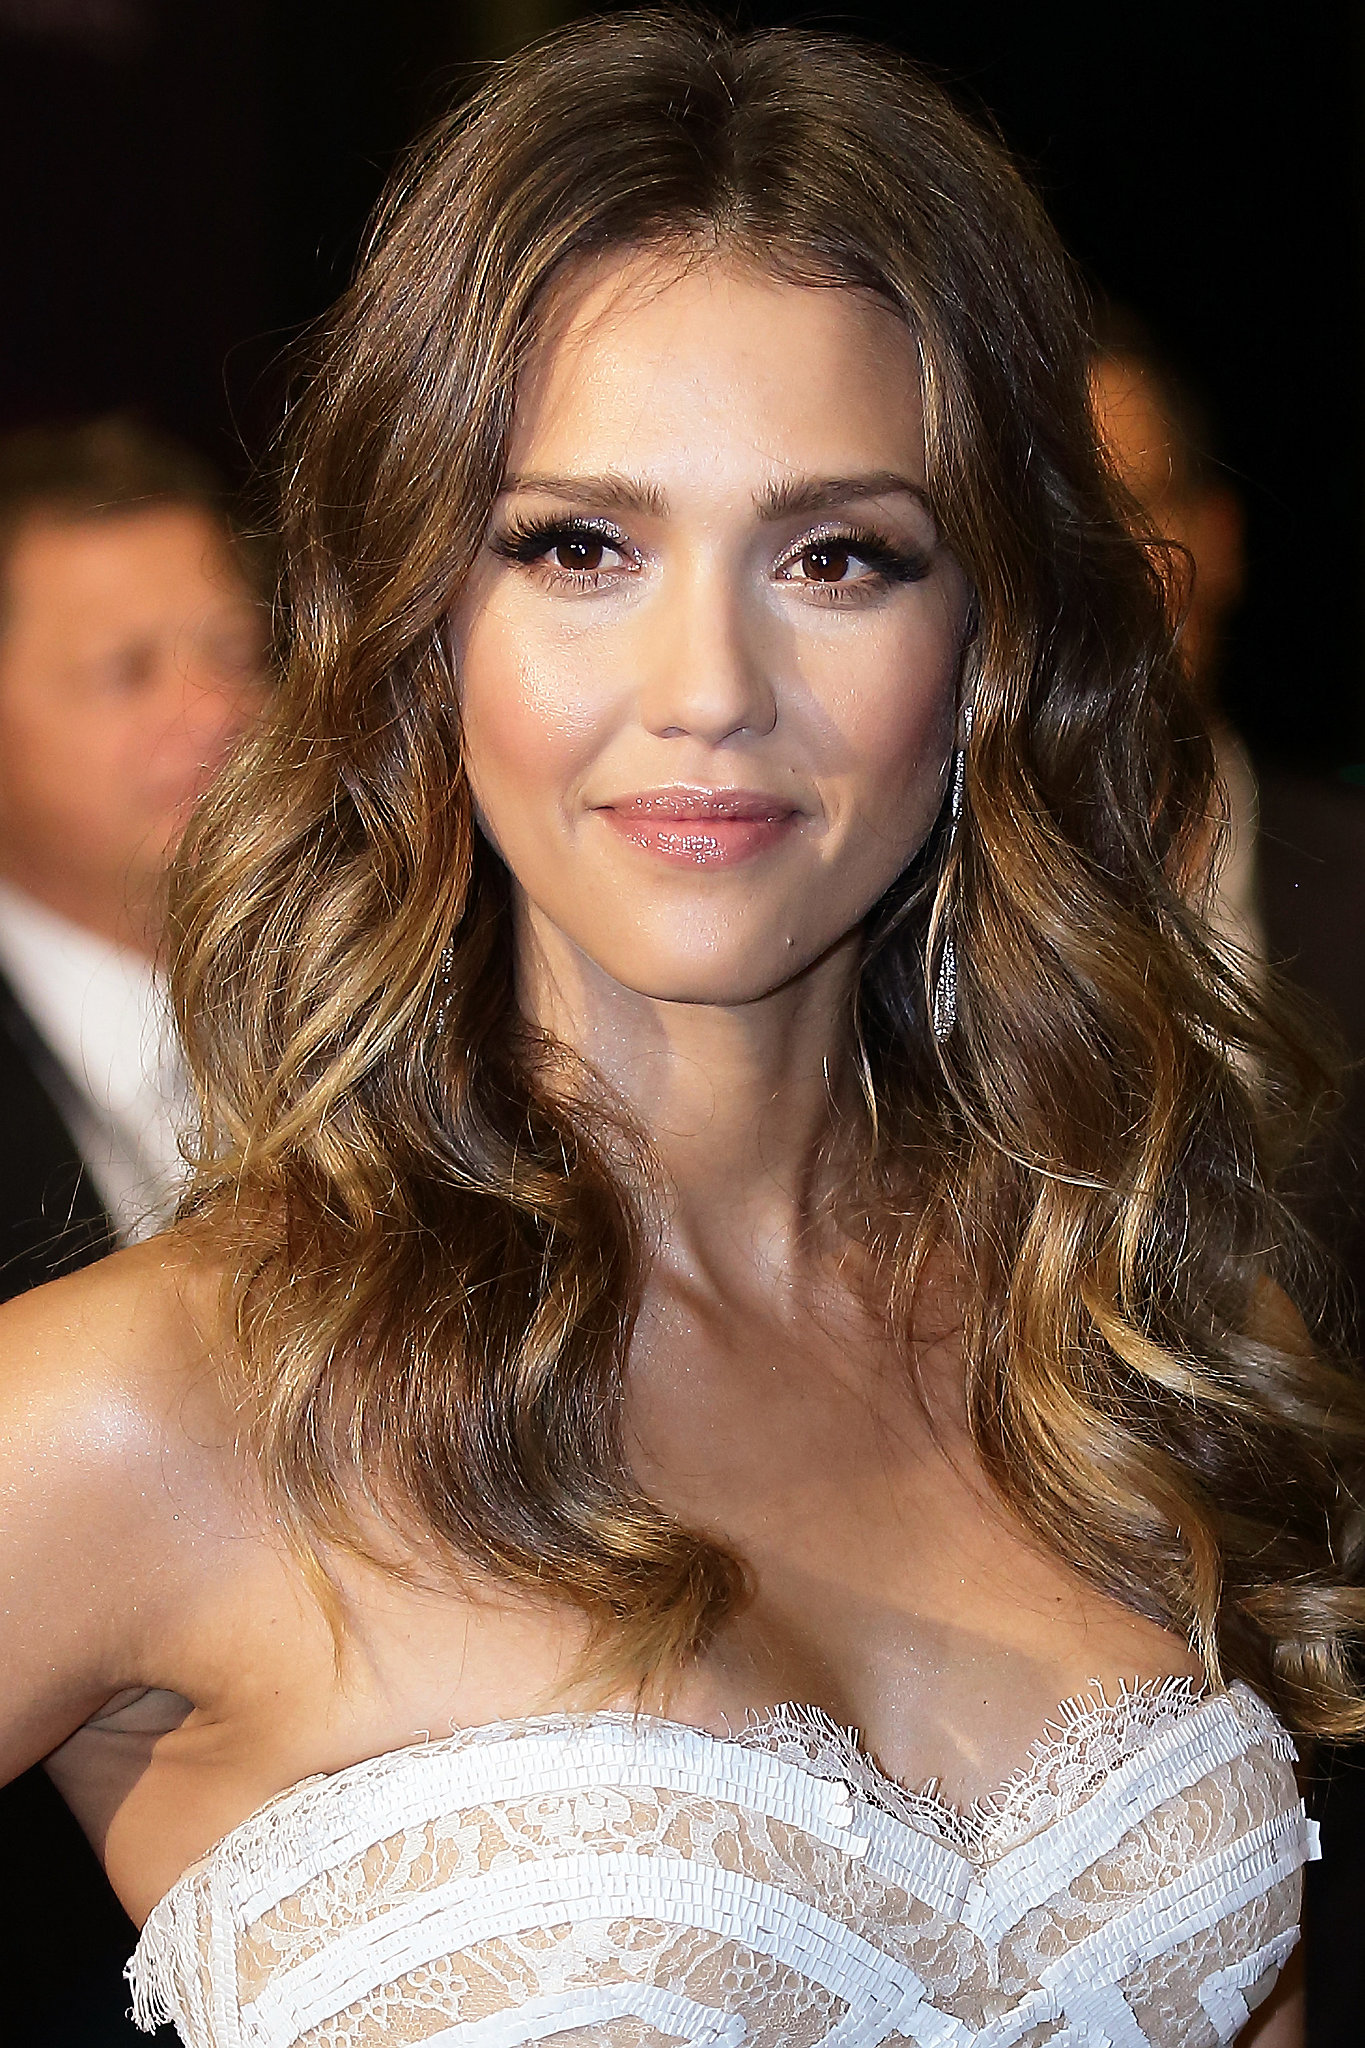 Jessica Alba stepped out in Singapore for the 2013 Social